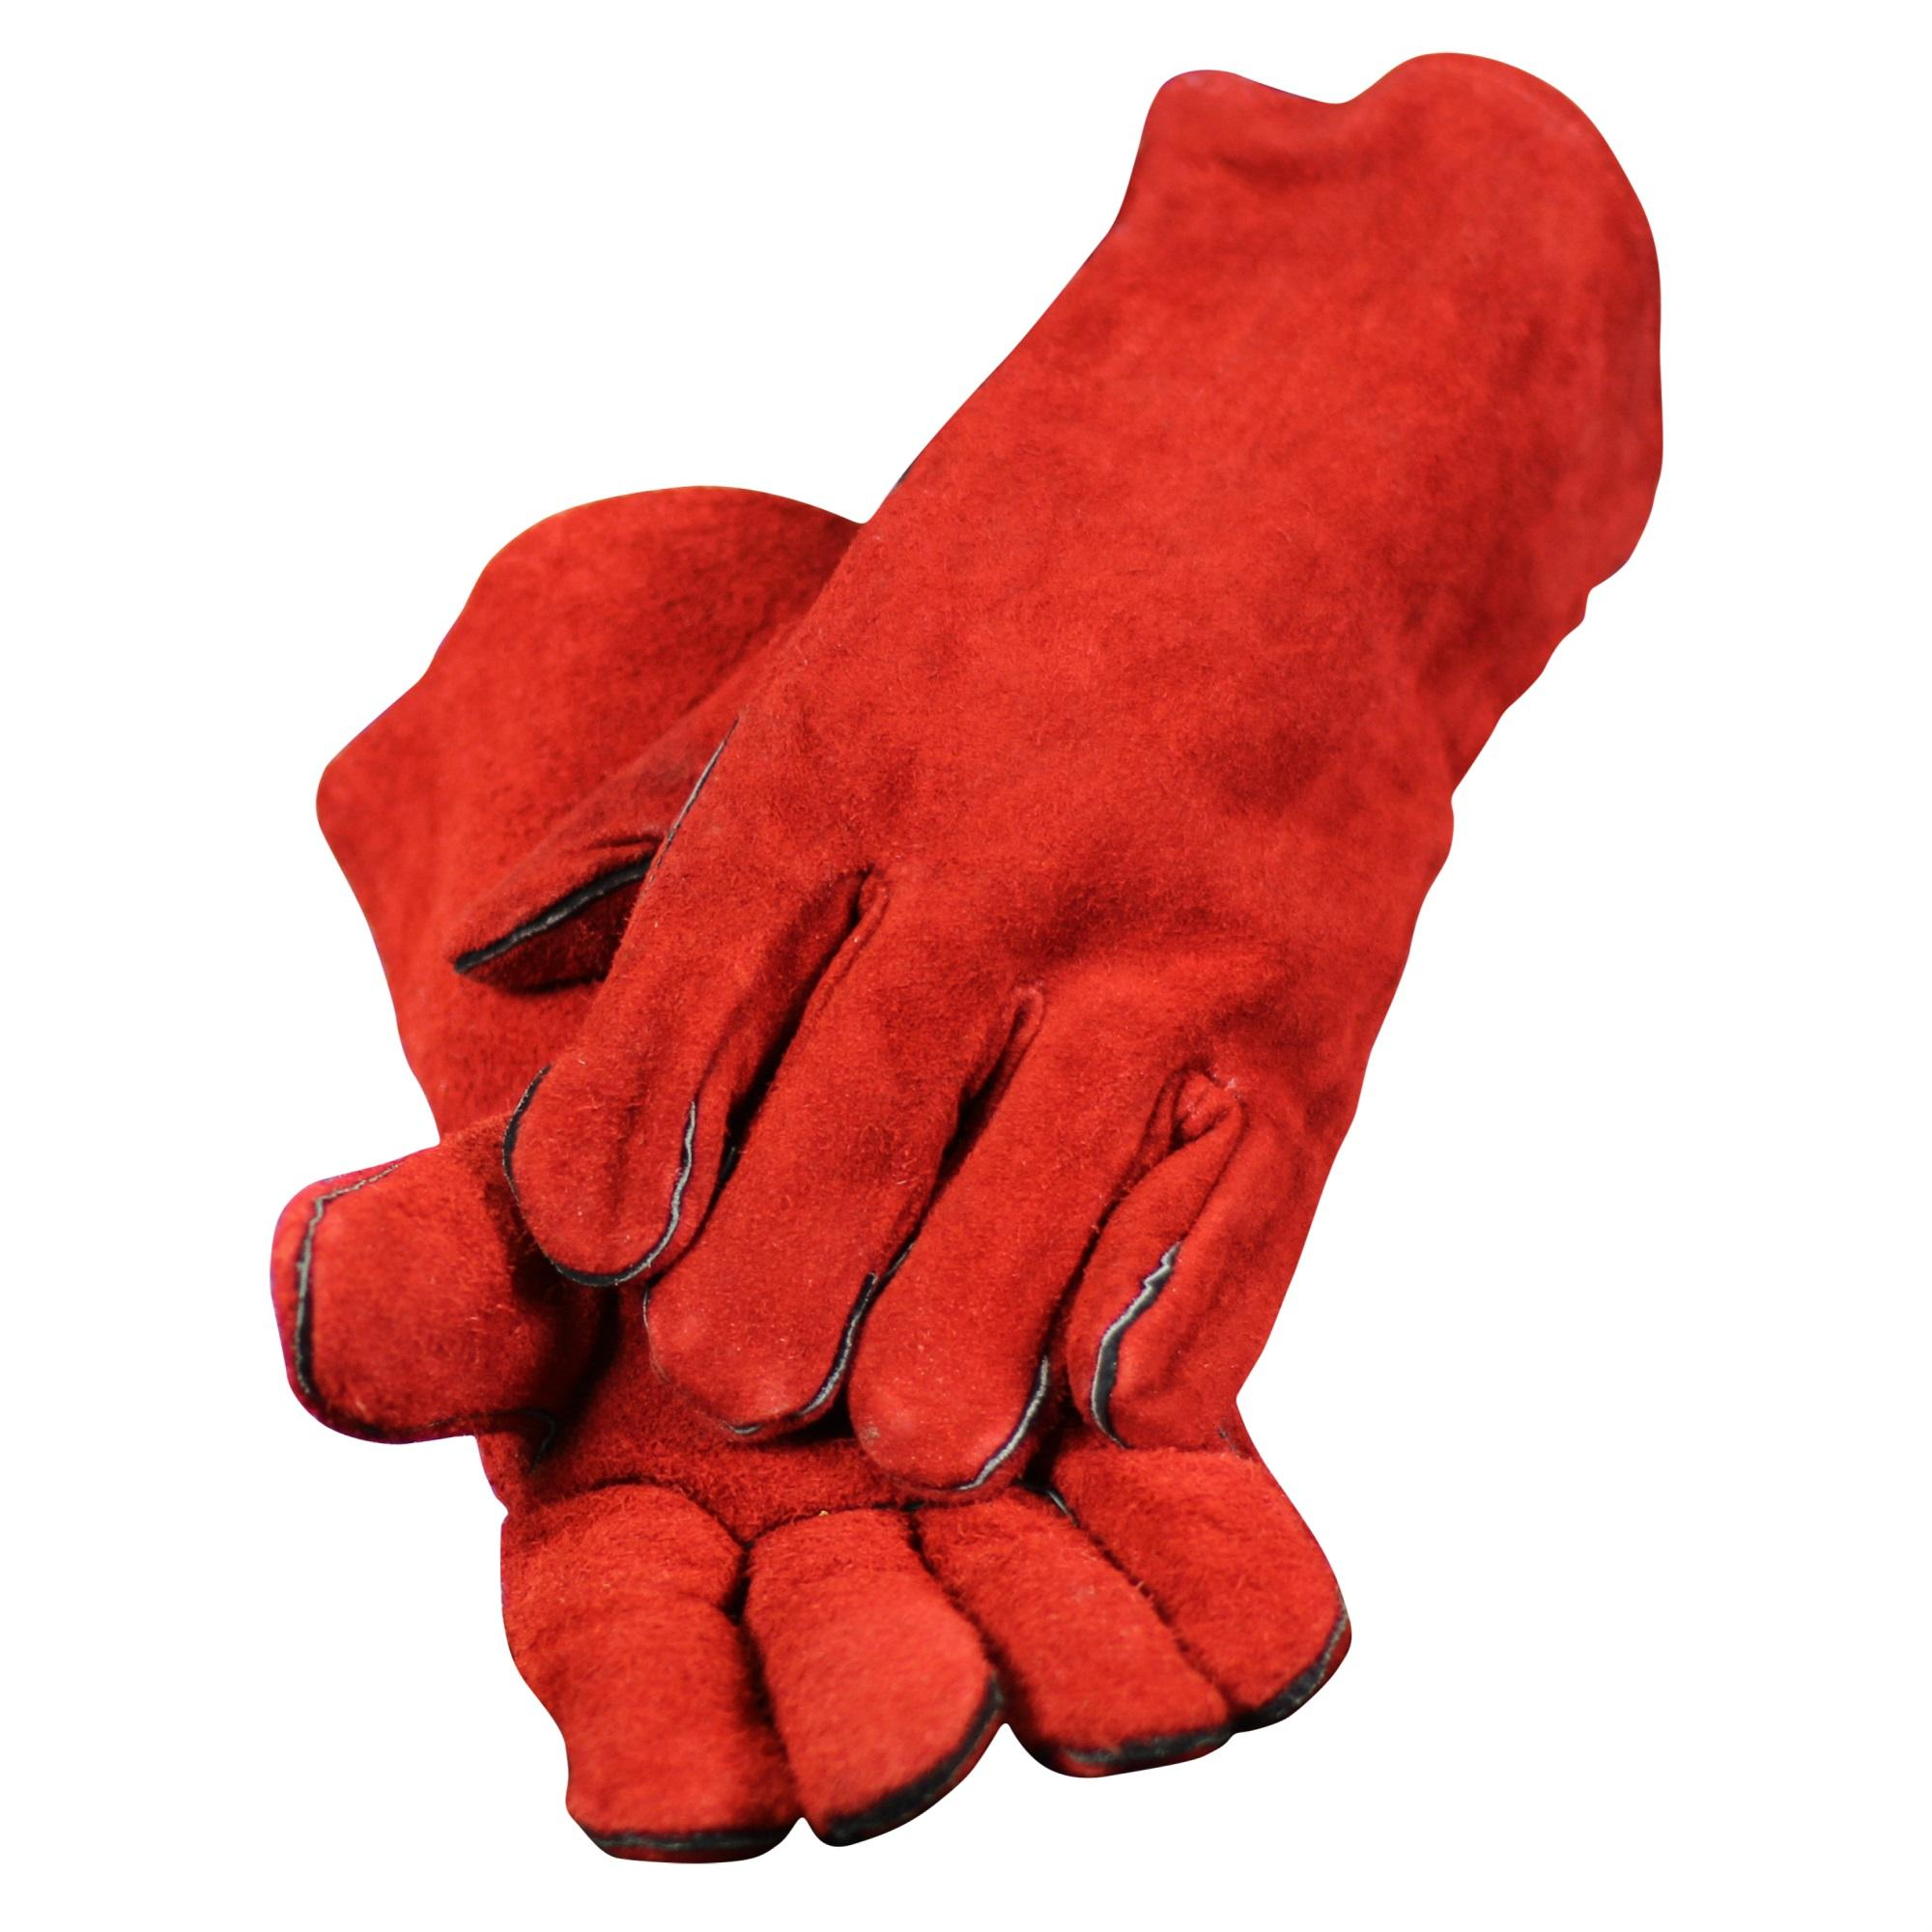 Fireplace Gloves- Red Leather